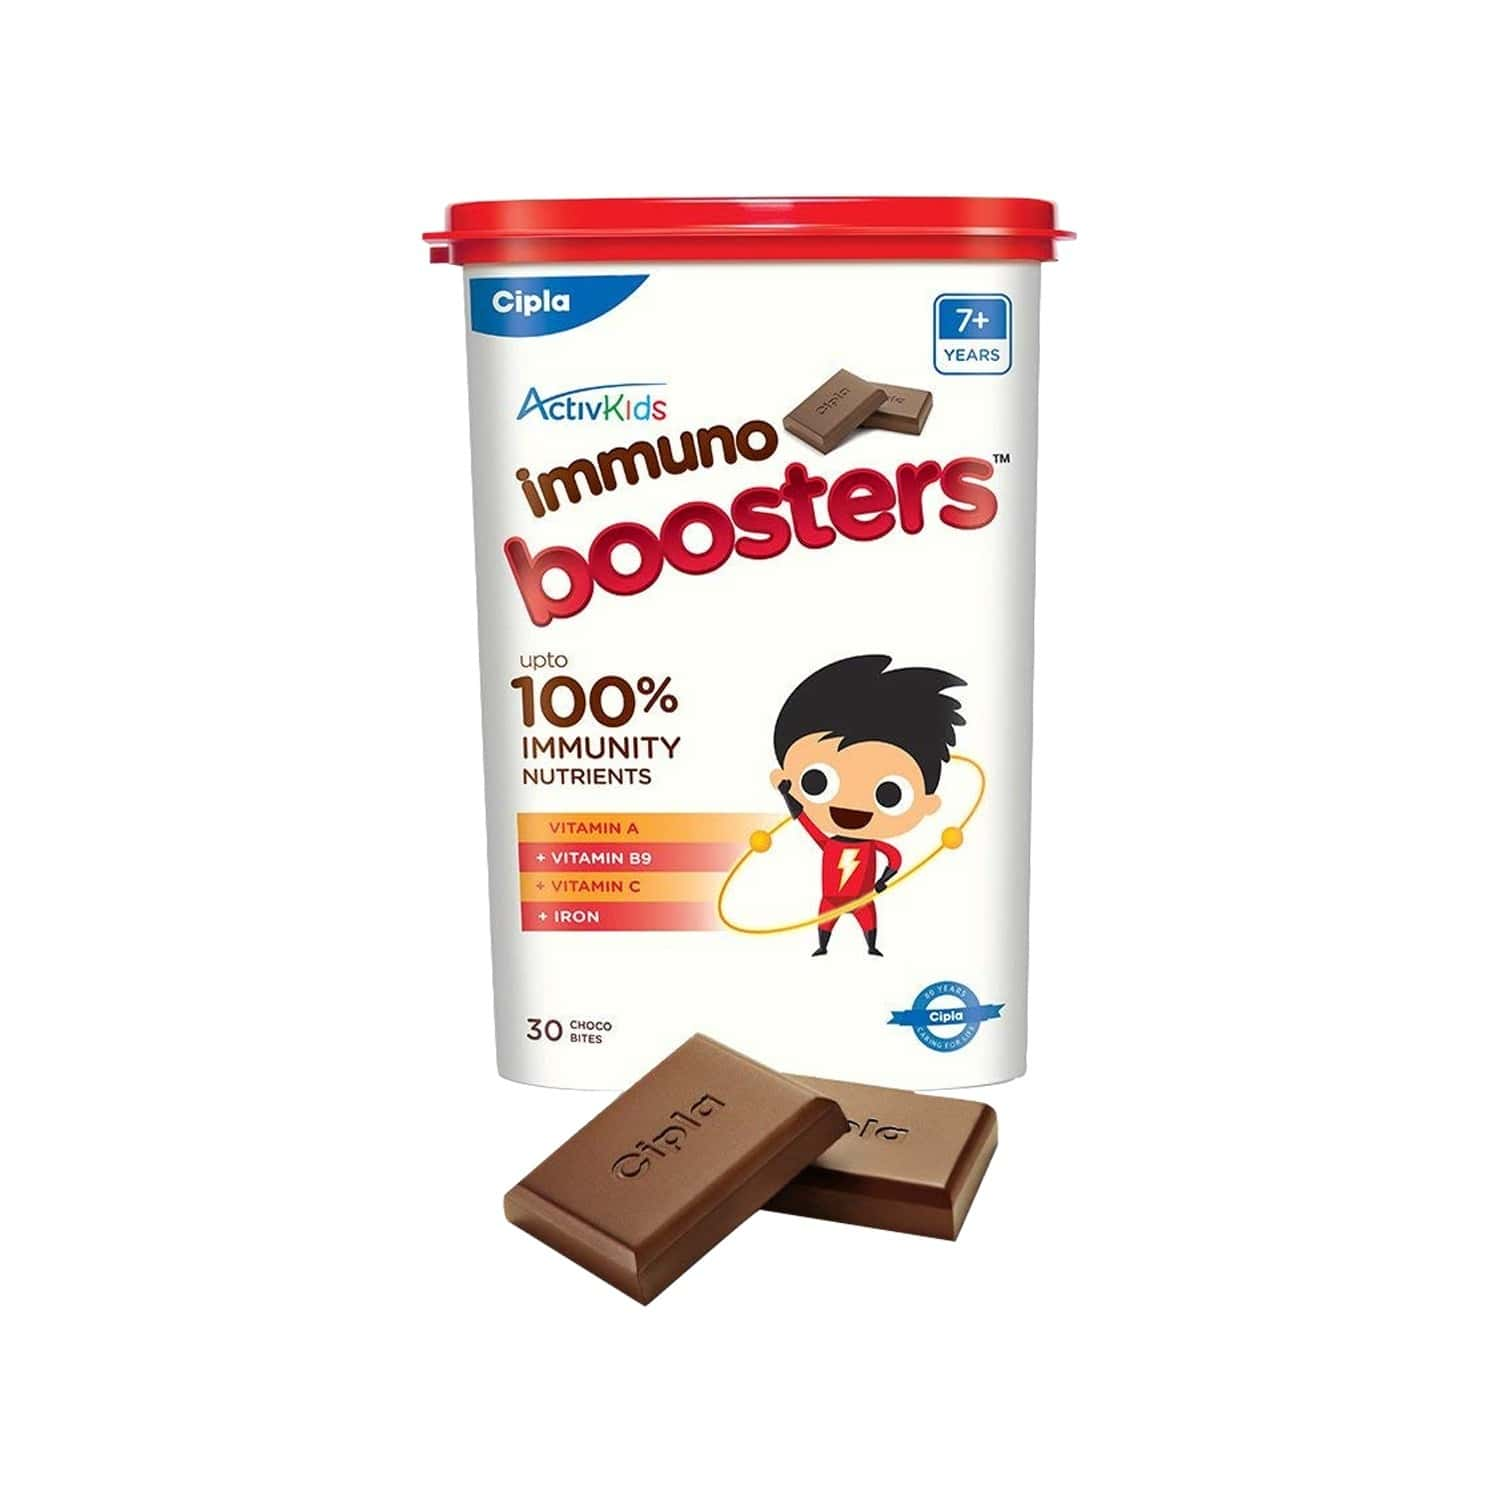 Cipla Activkids Immuno Boosters Nutrition Bar 7+ Years Bottle Of 30 's